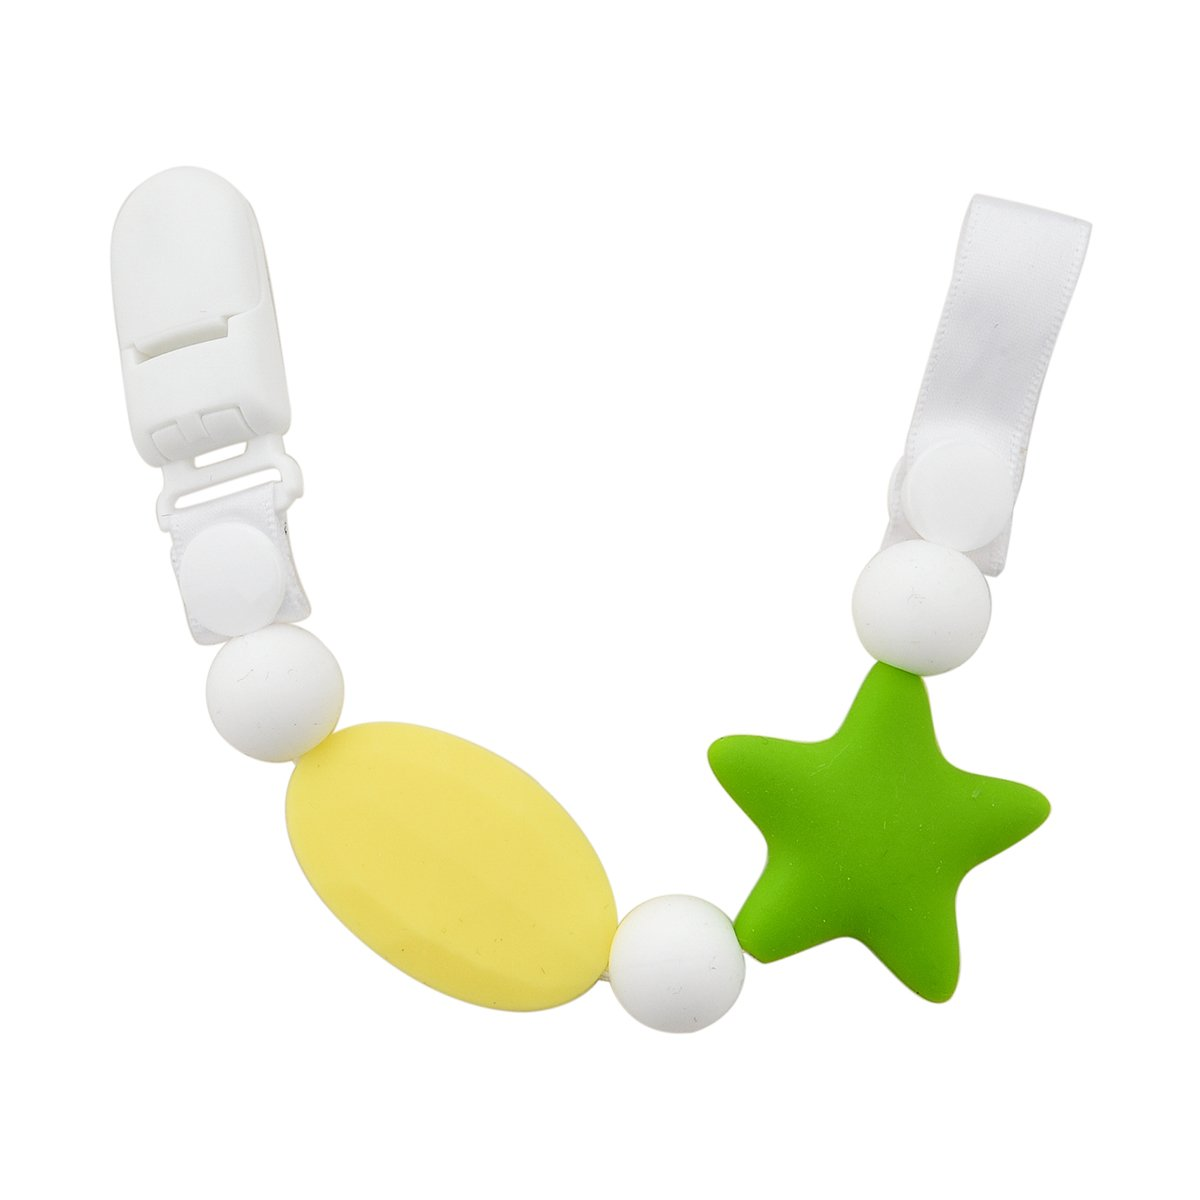 Teether Pacifier Colorful Silicone Soothie Image 3